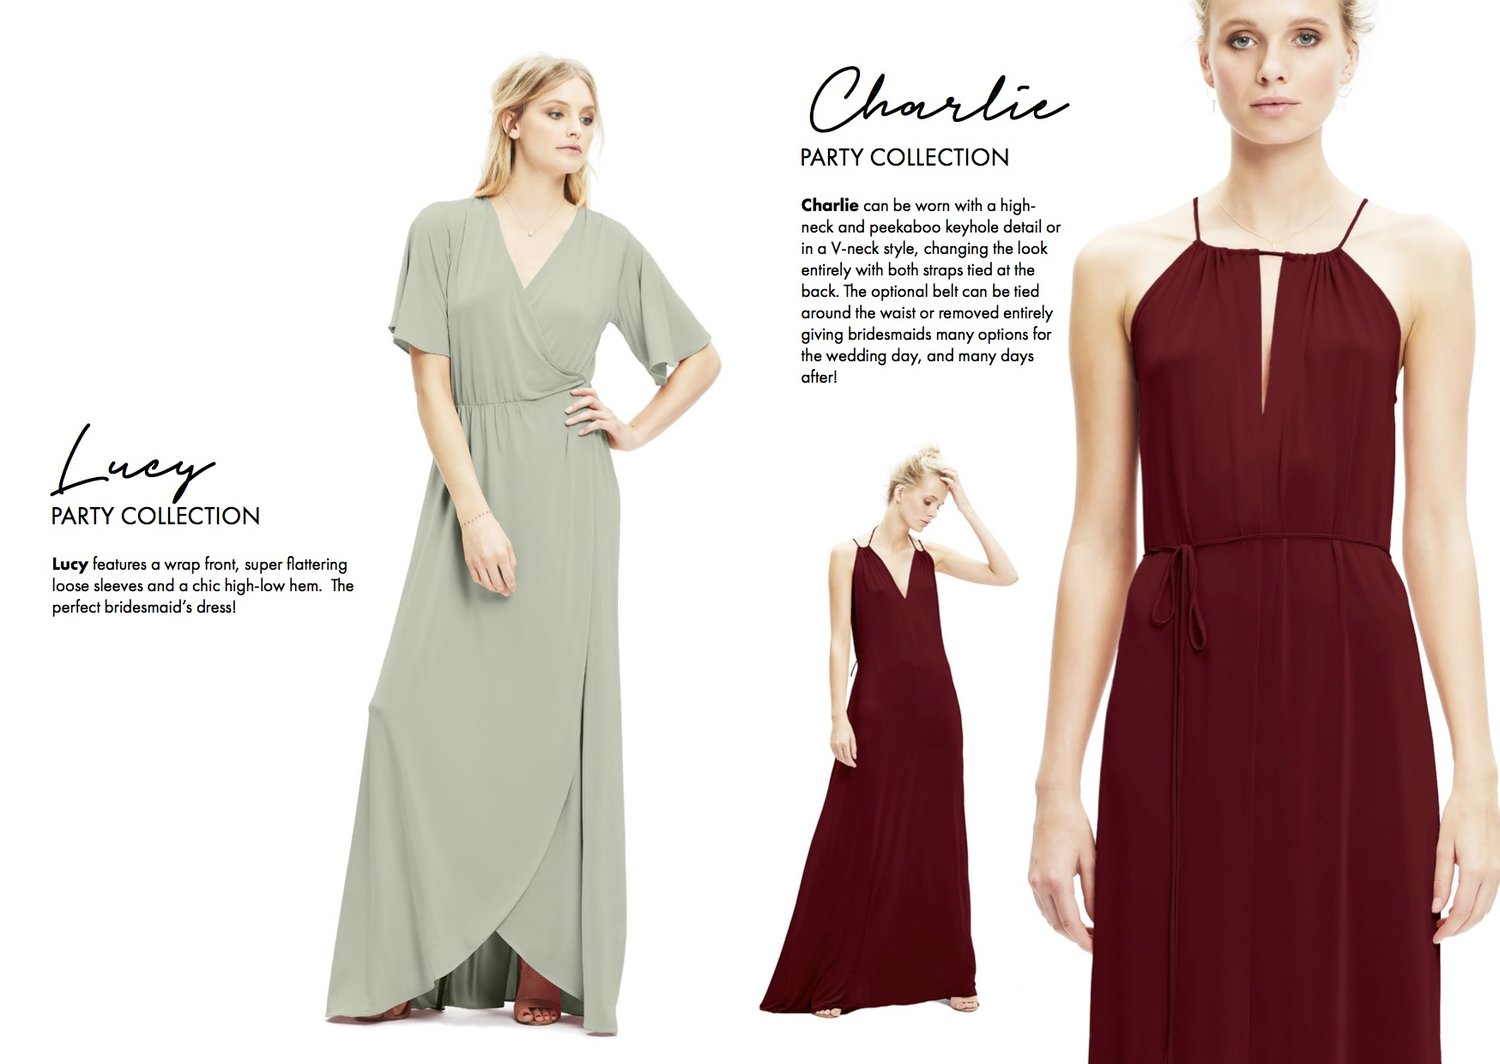 Twobirds bridesmaid party collection lamare london luxury lucy and charlie twobirds bridesmaid party collection bridesmaids dresses luxury wedding planner ombrellifo Images